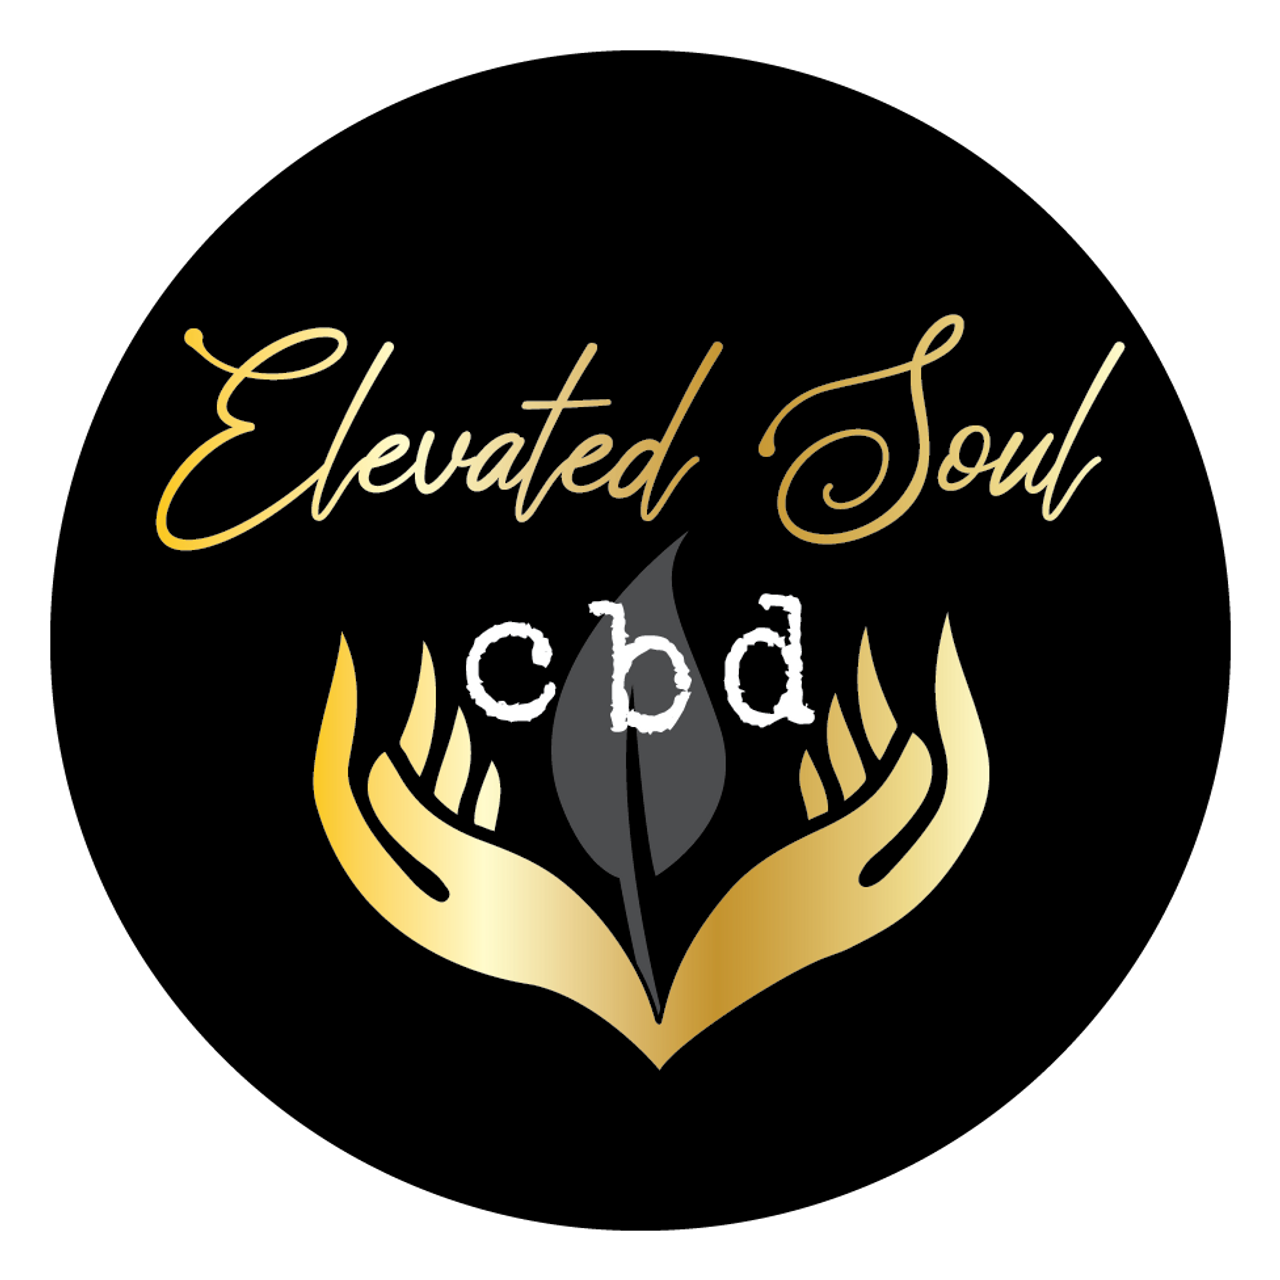 Elevated Soul